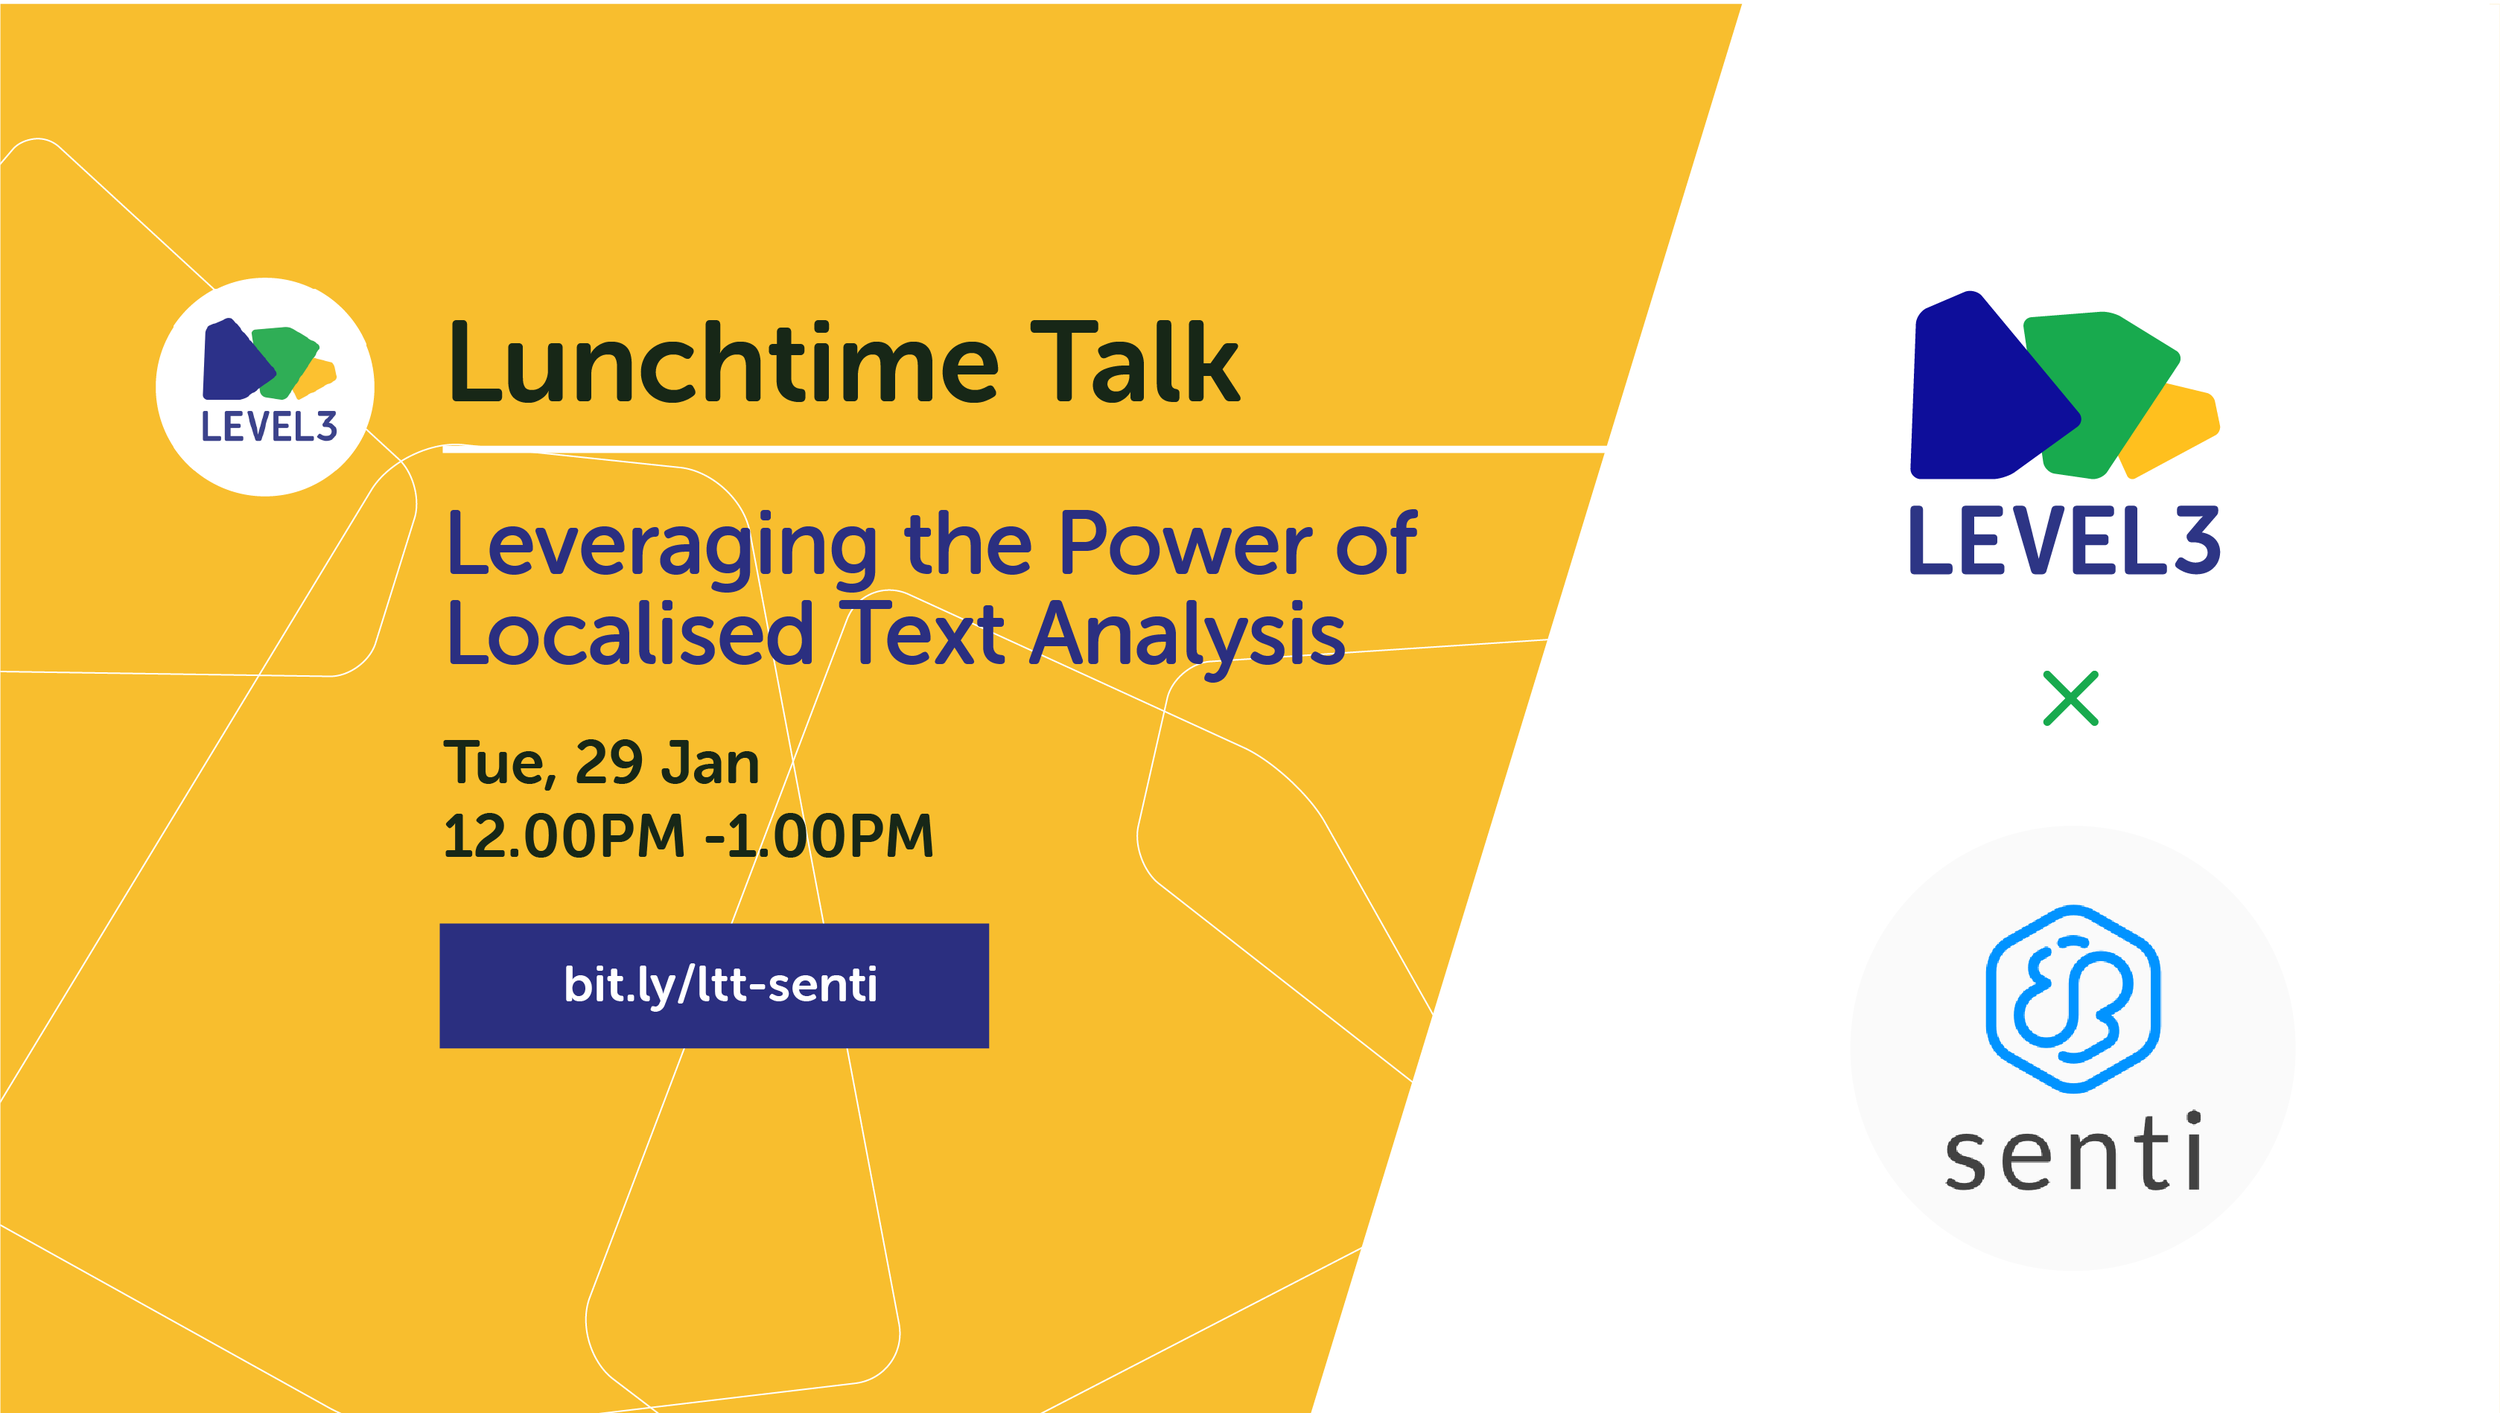 Lunchtime Talk Template-02.png